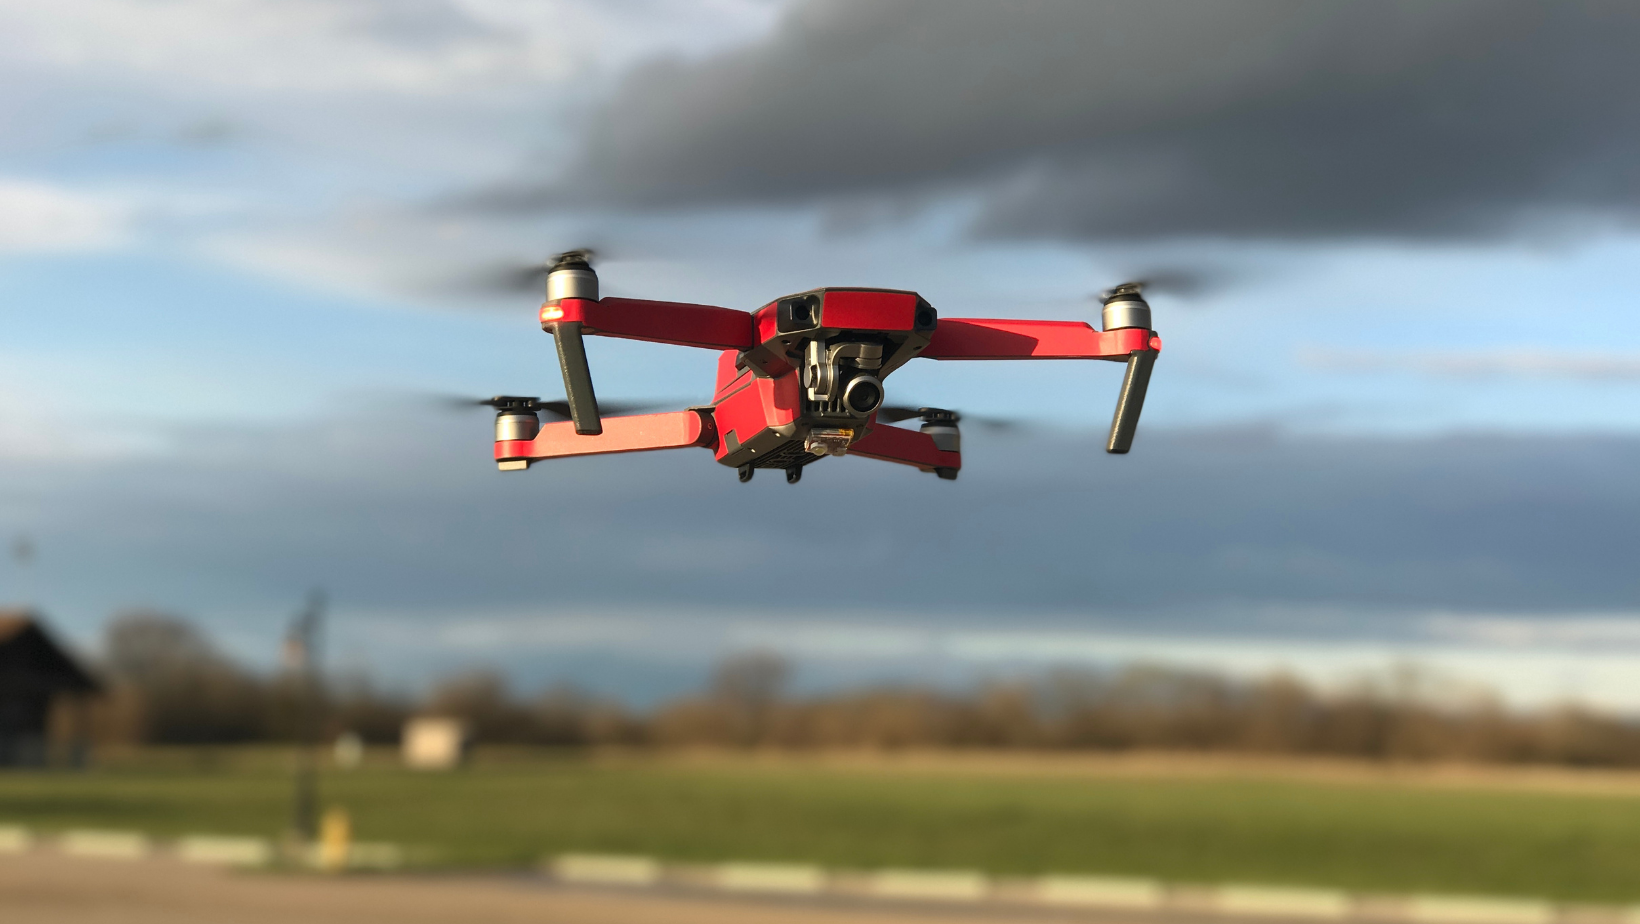 Legal Pitfalls HOAs Should Avoid When Using Drones